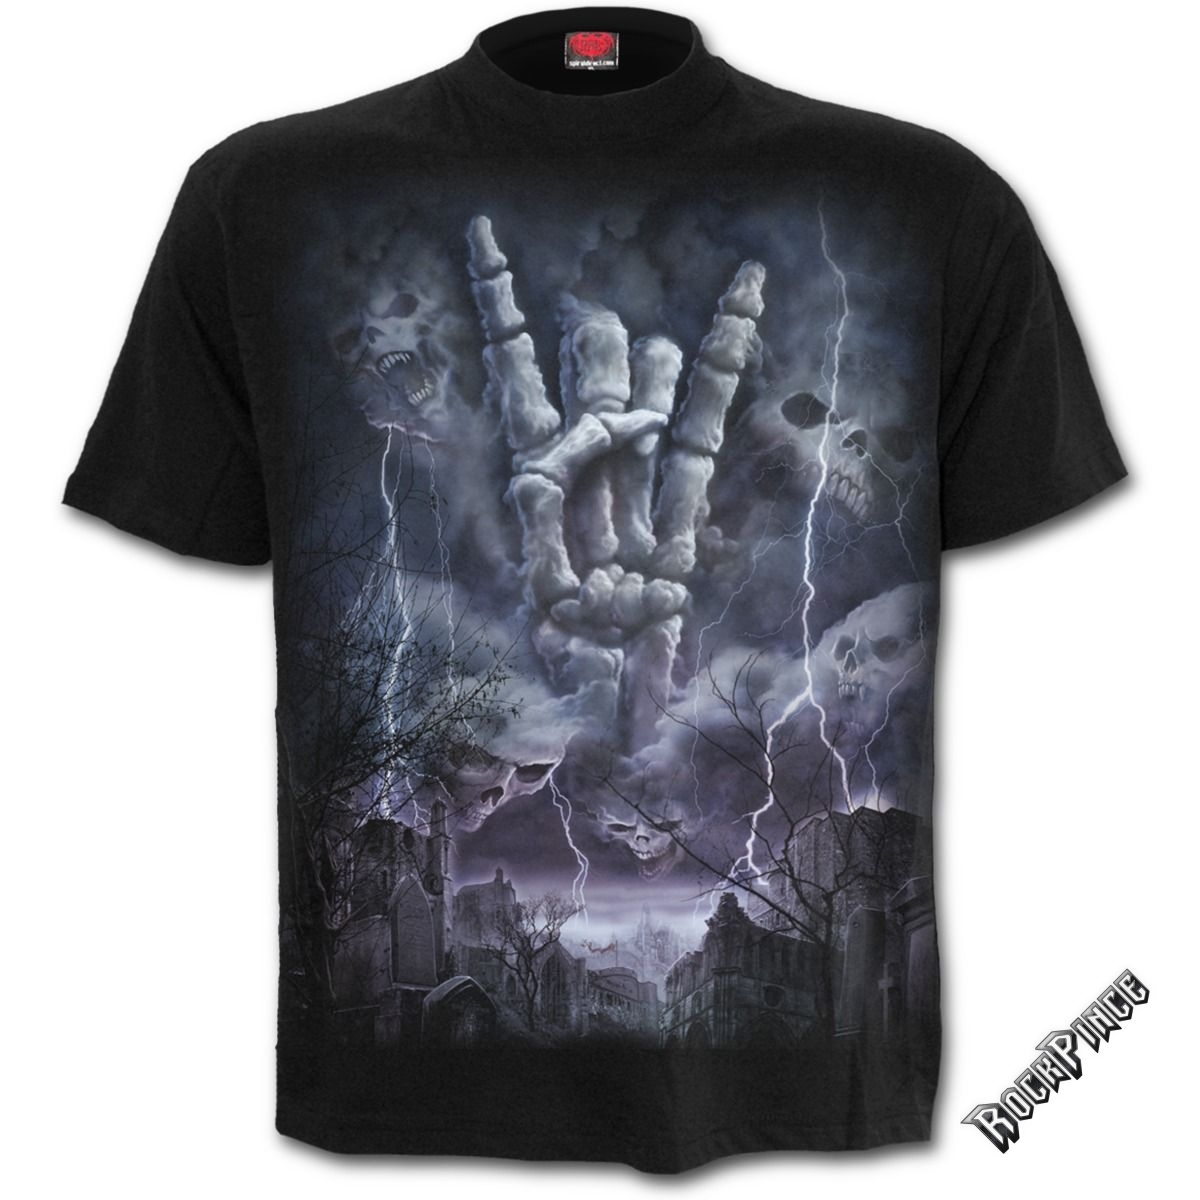 ROCK ETERNAL - T-Shirt Black - T136M101